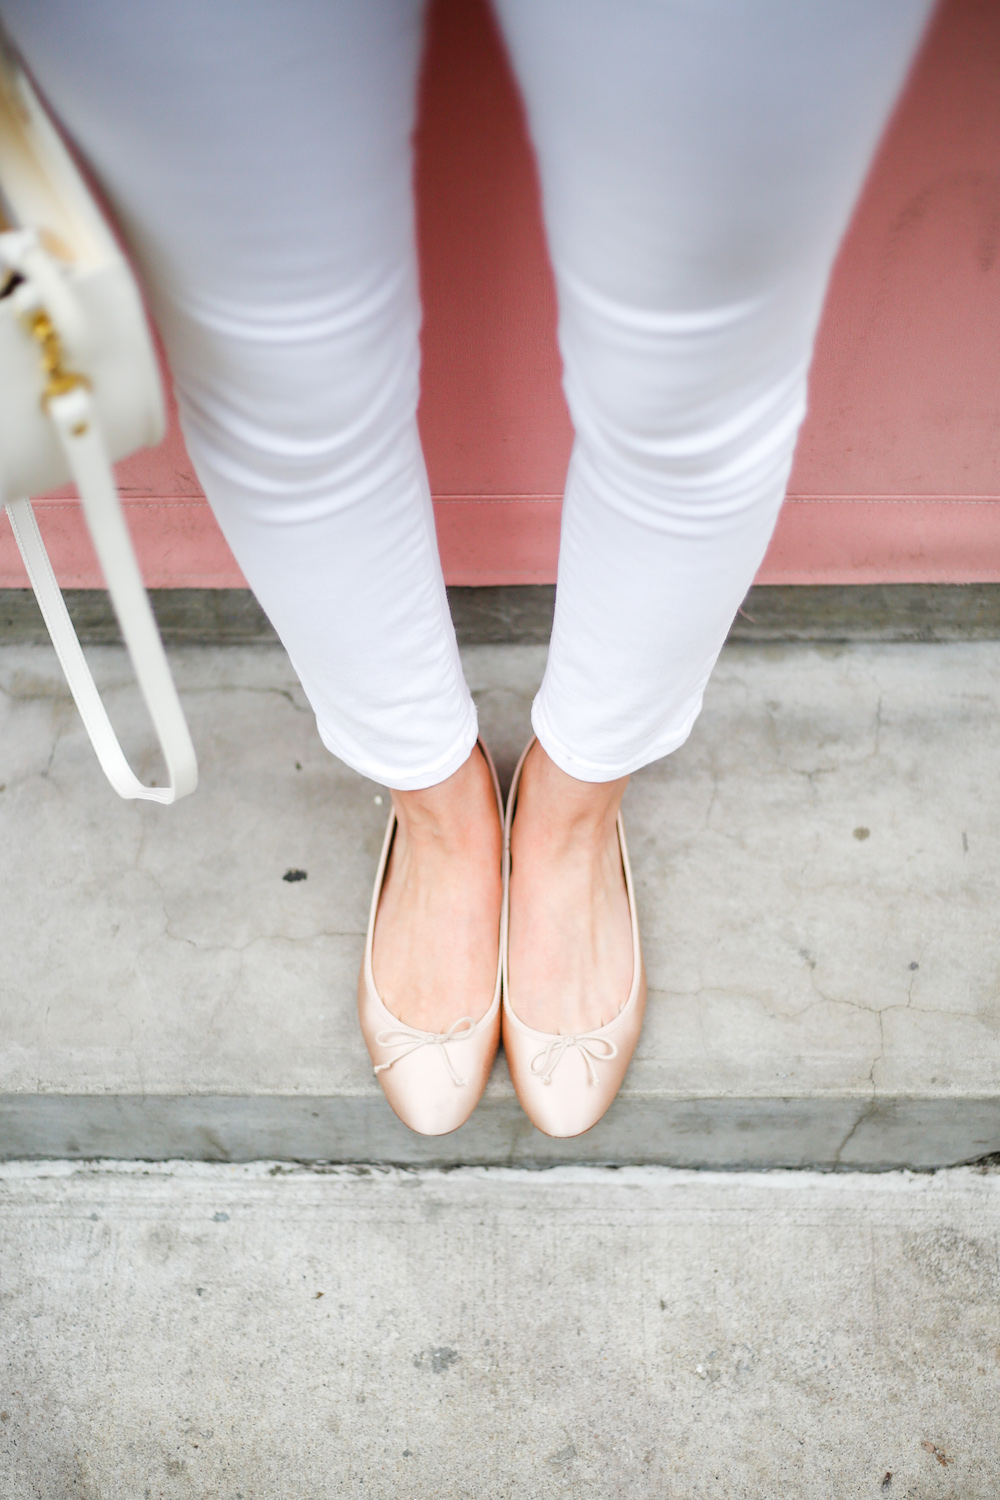 6264665cda9 j.crew satin ballet flats with white jeans - Design Darling